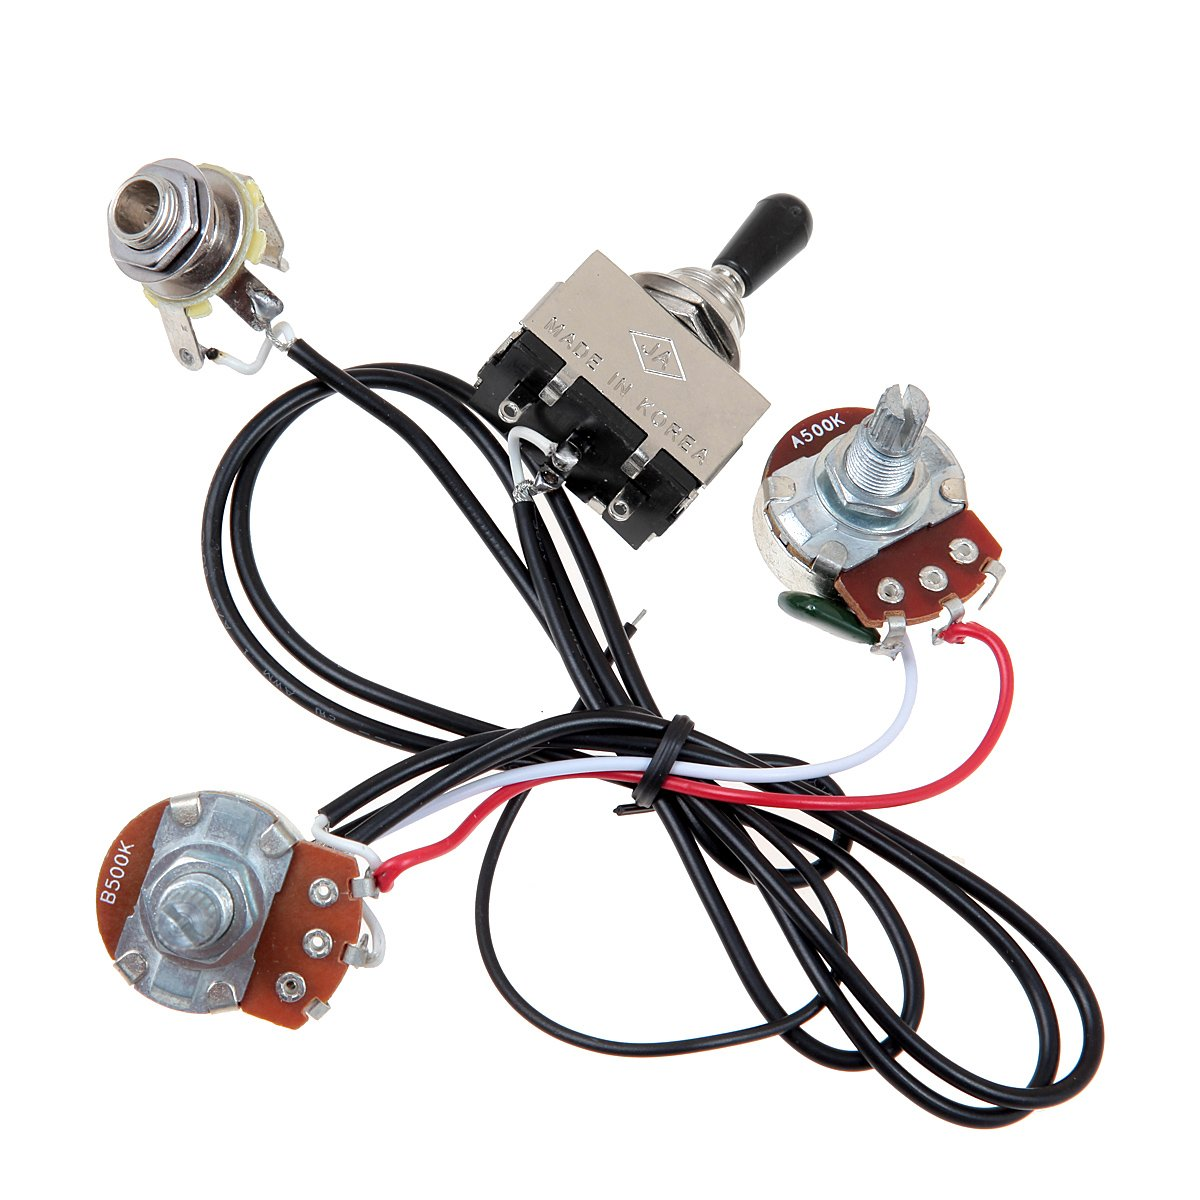 71%2BaA7TOd1L._SL1200_ amazon com kmise mi0321 guitar wiring harness prewired two pickup guitar wiring harness kits at readyjetset.co